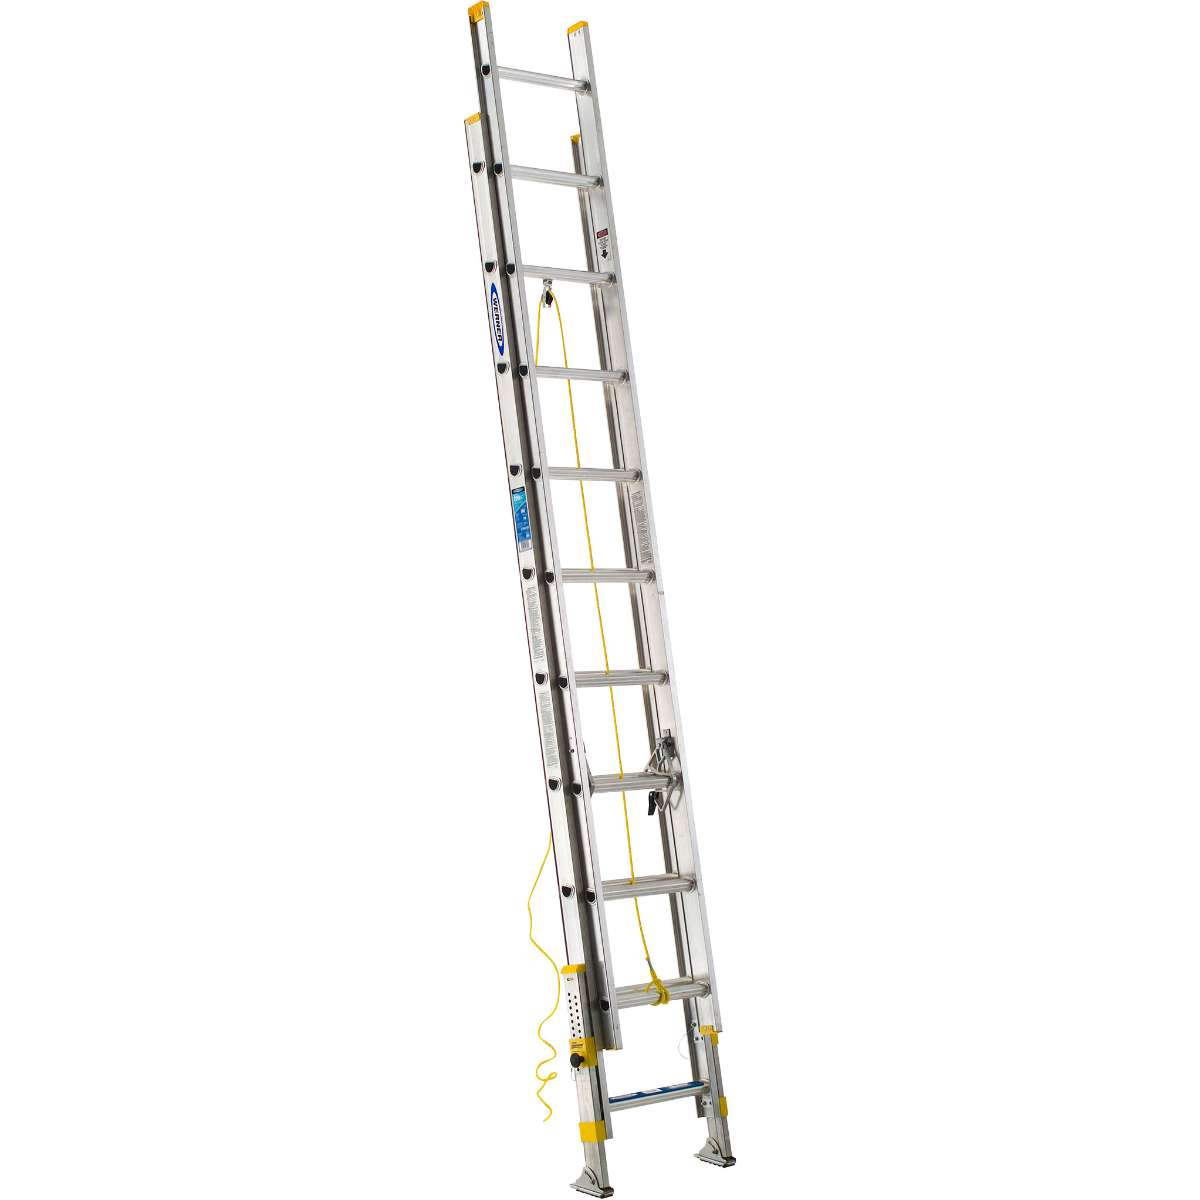 Werner Multi Section Aluminum Extension Ladders